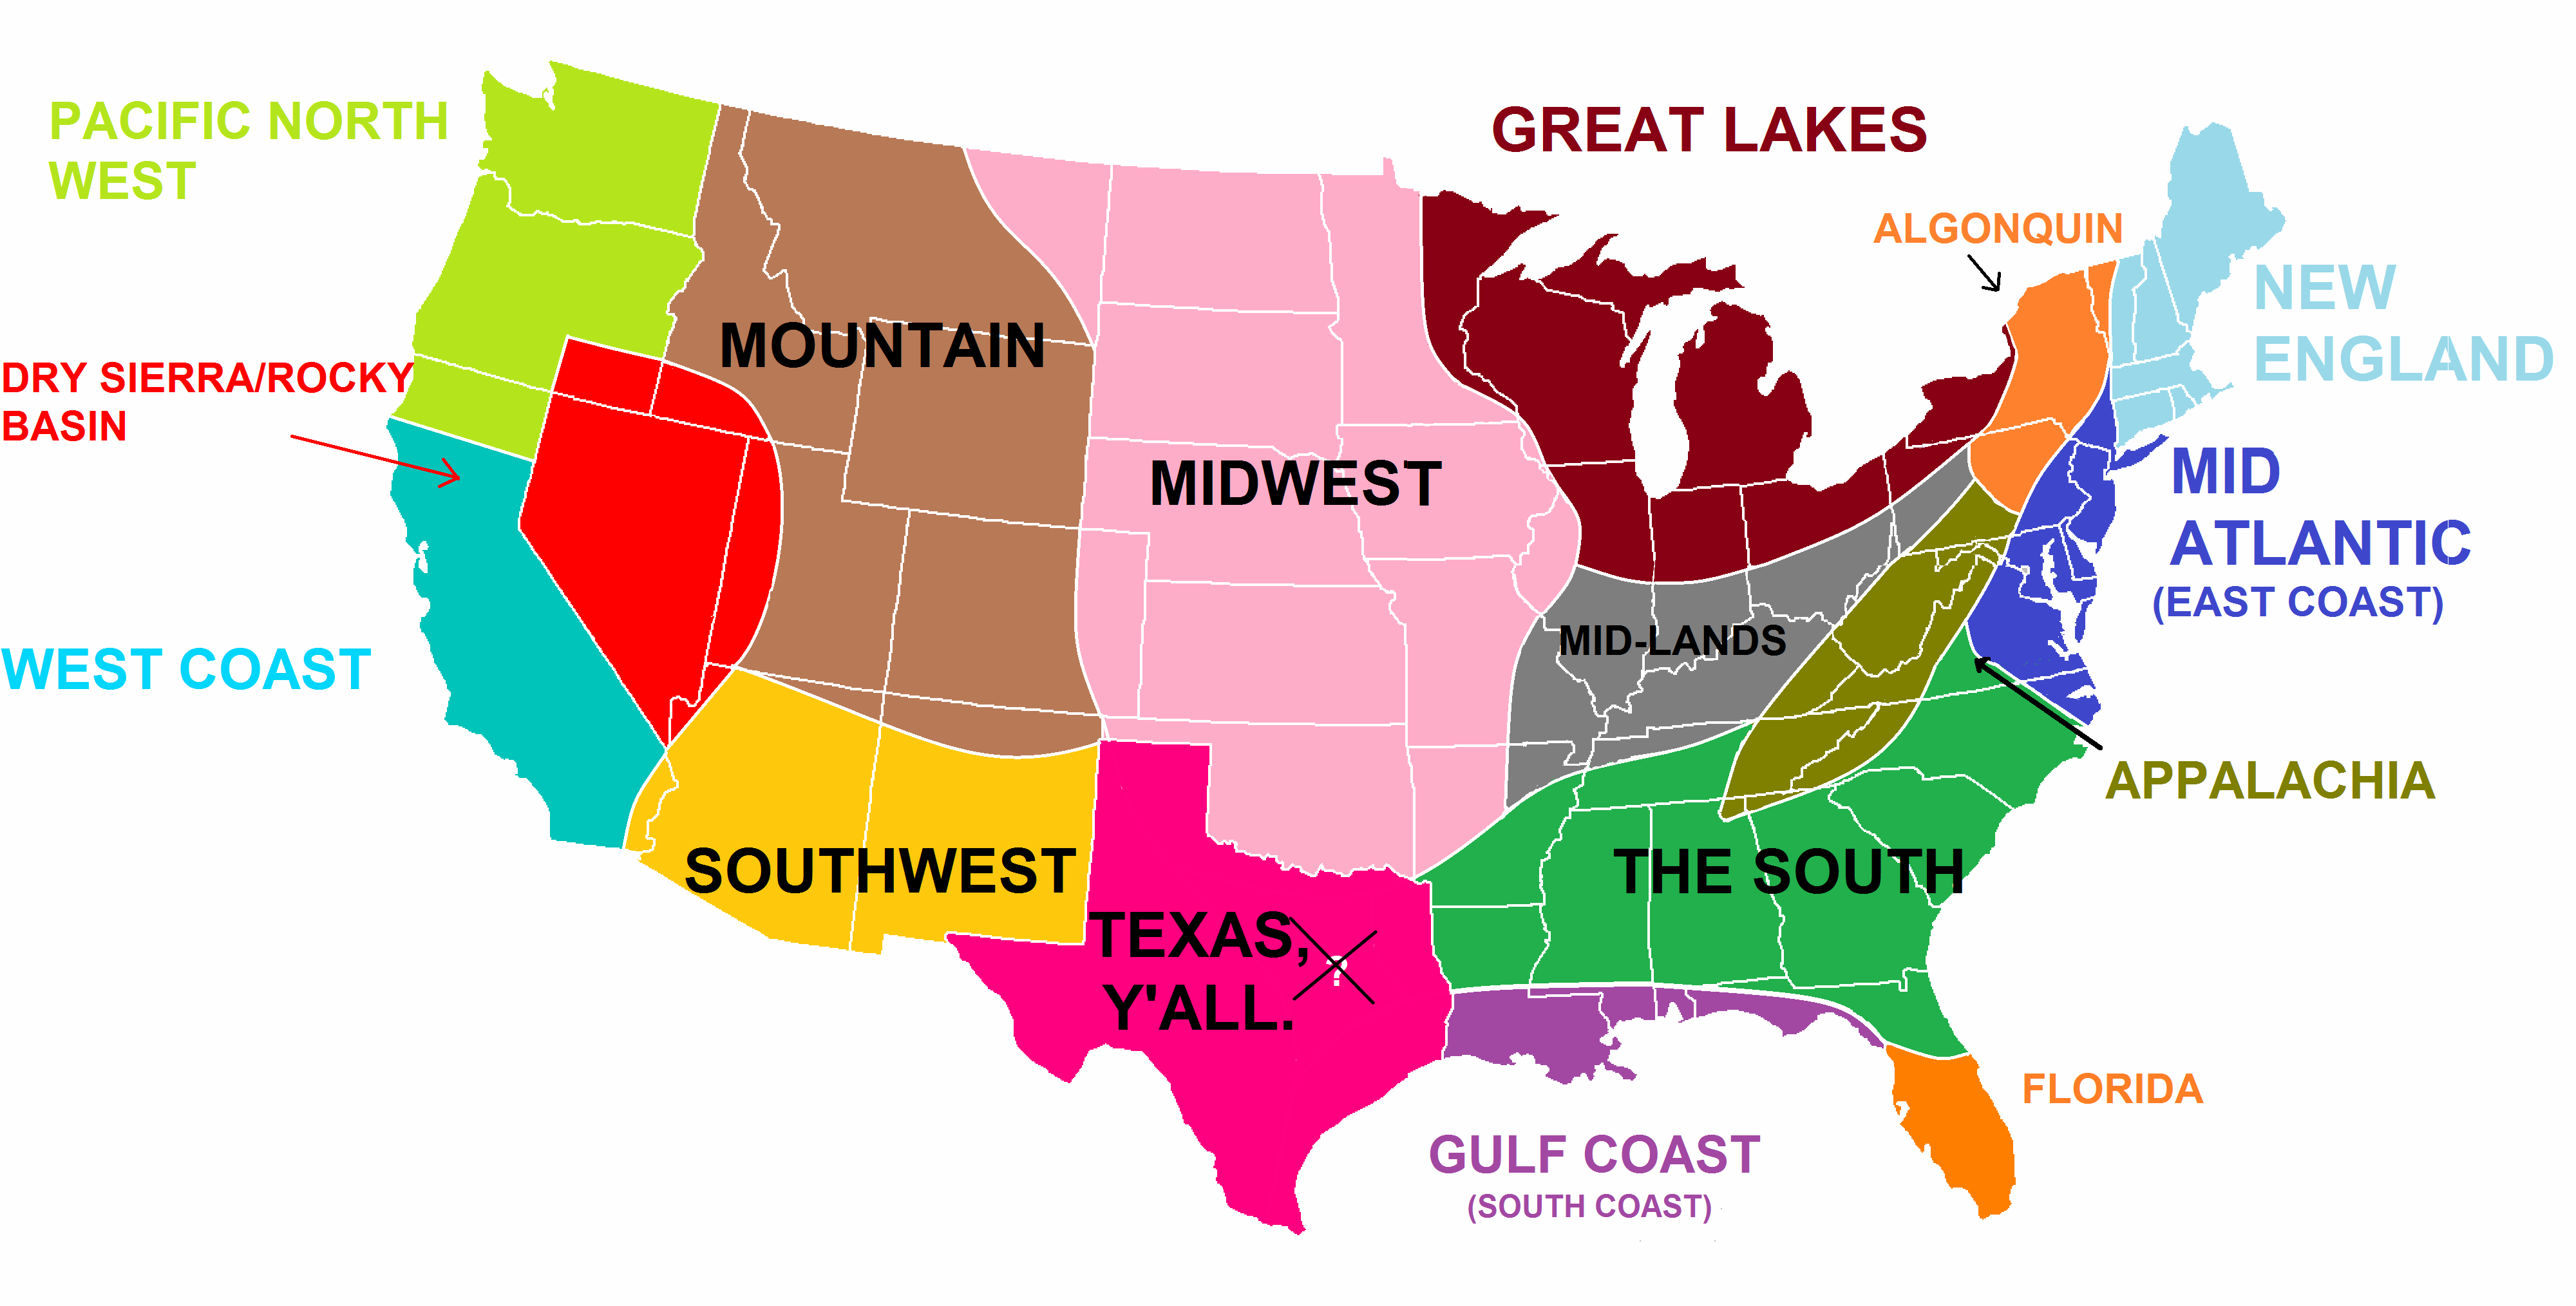 12 Ways to Map the Midwest Map Of Midwest States In Usa on map of northeast states in usa, map of east coast states in usa, map of great lake states in usa, map of southern states in usa, map of eastern states in usa, map of new england states in usa, map of central states in usa,